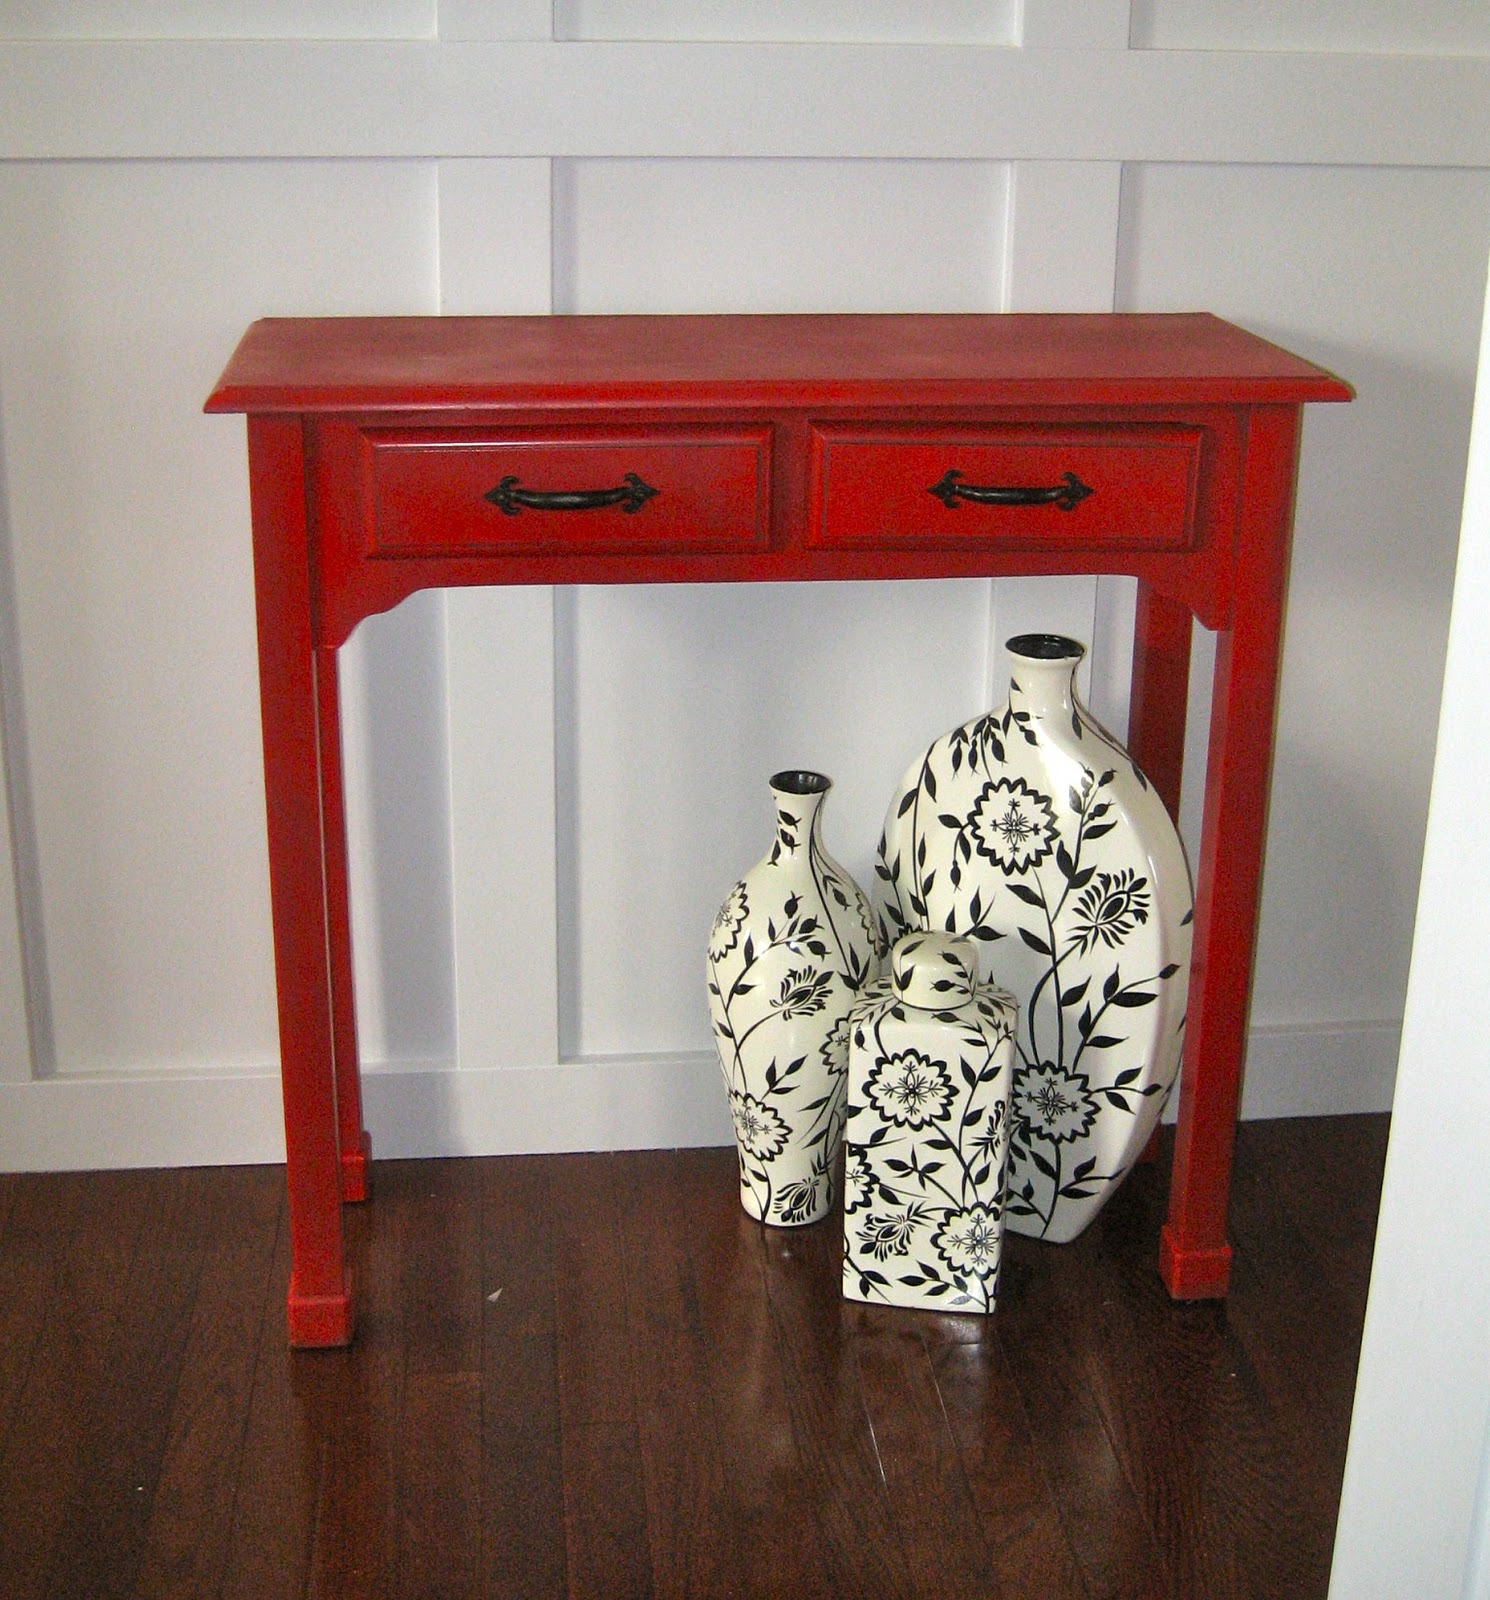 remodelaholic red painted and glazed accent table corner wood kirklands silver decor west elm cushions outdoor side contemporary living room tables white chair ikea desk target